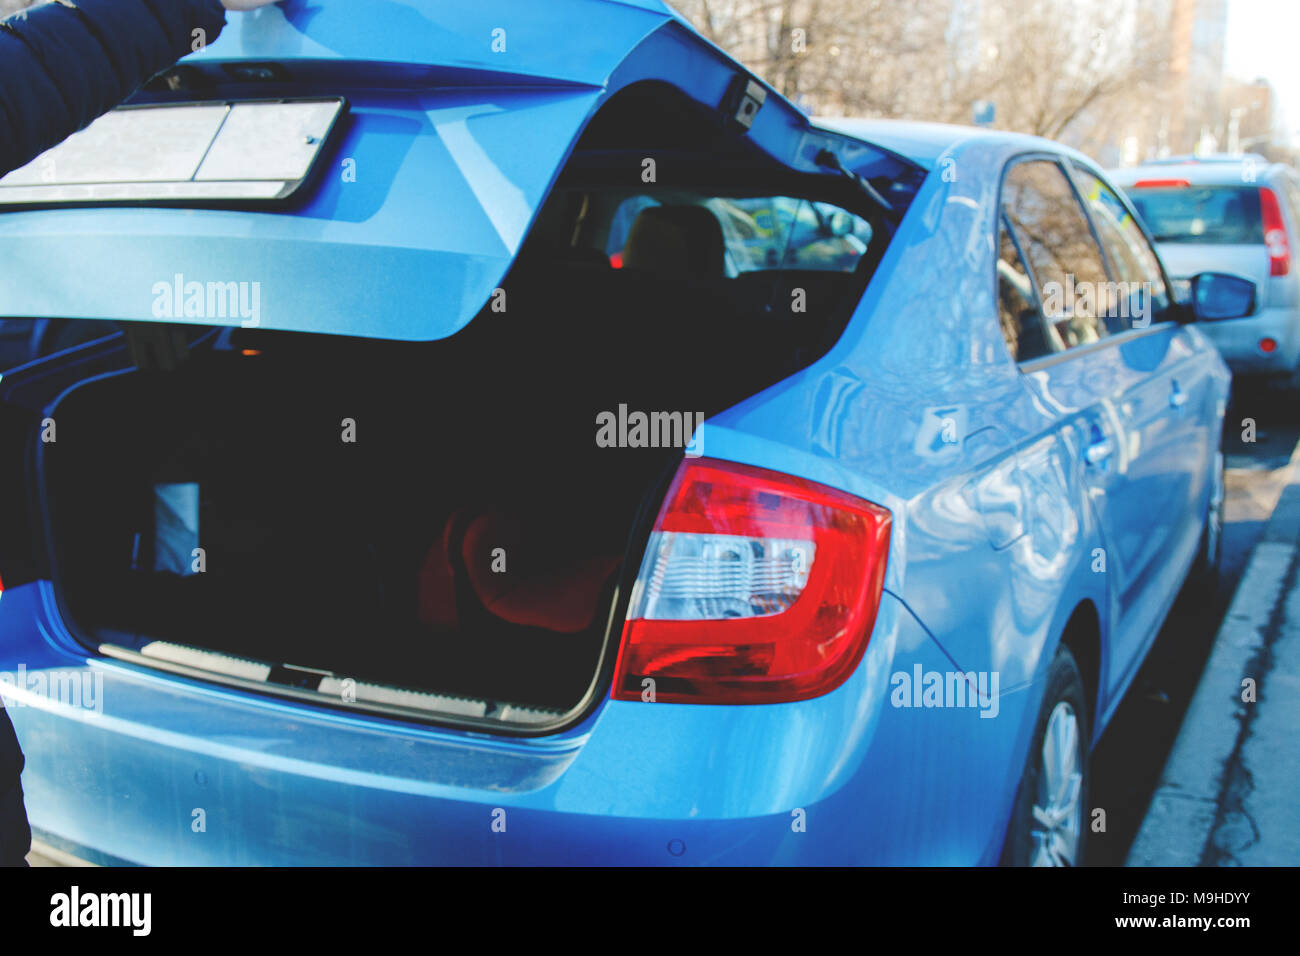 open trunk of the blue car in which the spare child seat is stored - Stock Image